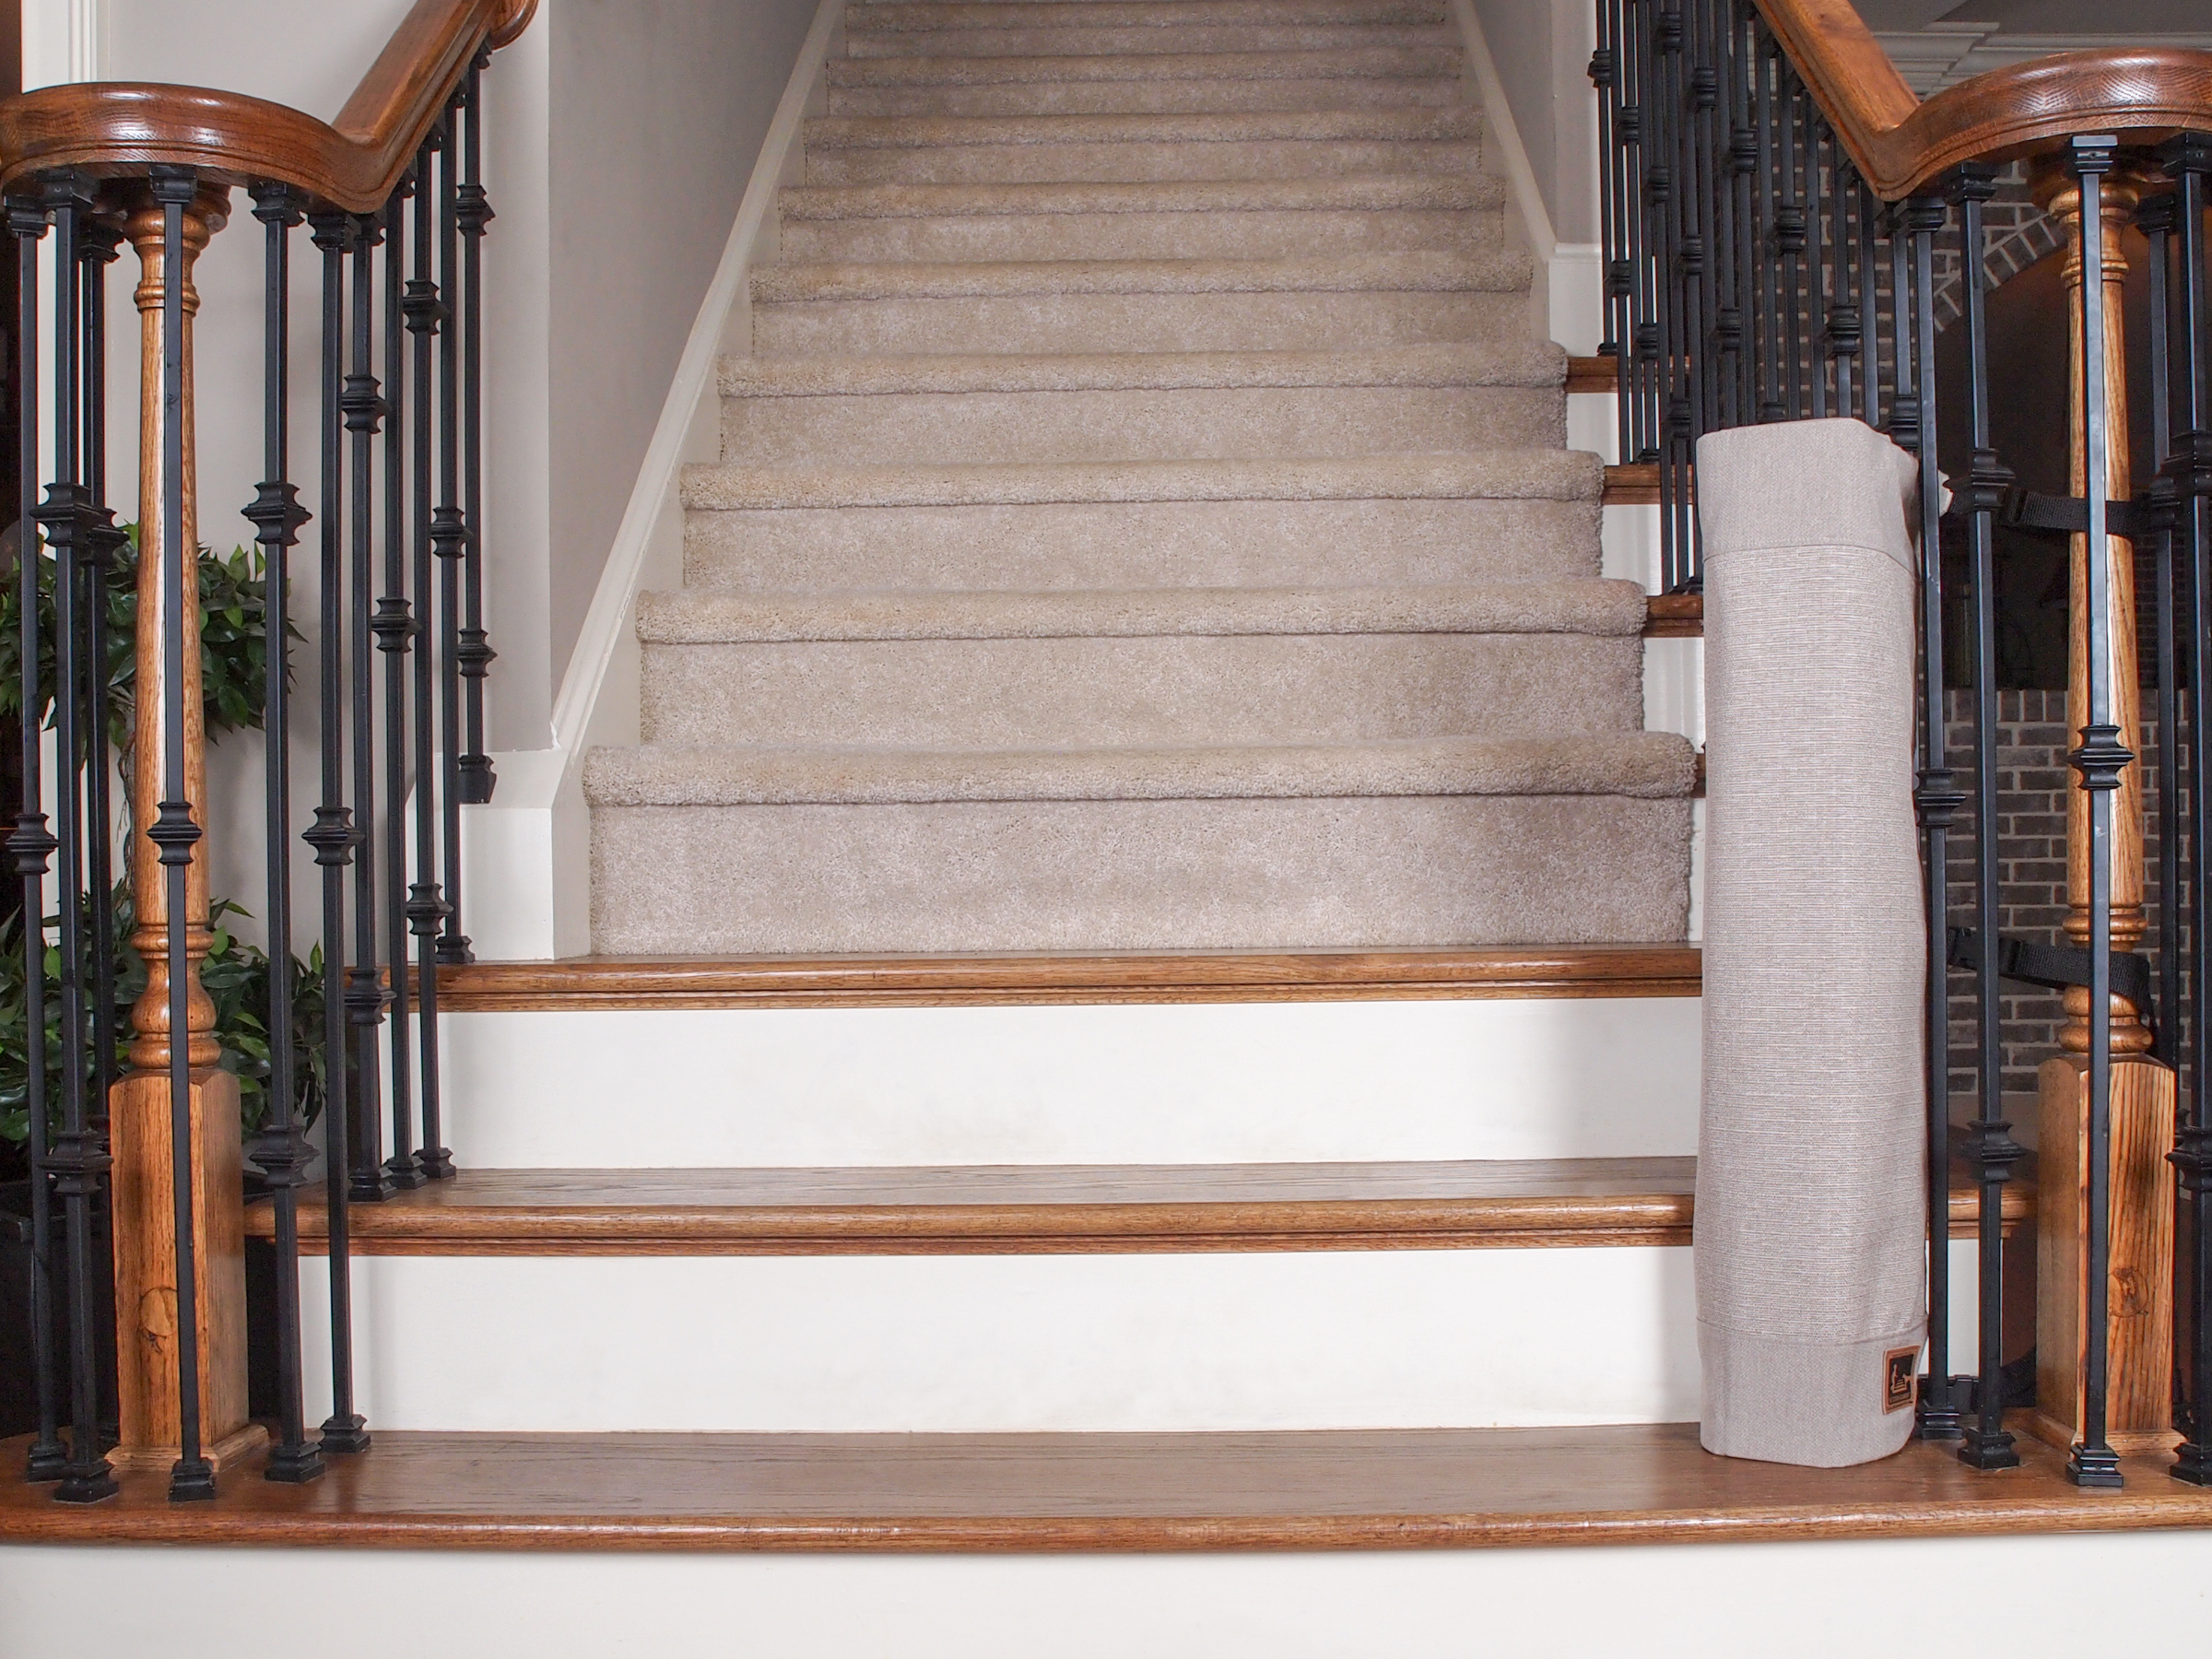 The Stair Barrier Banister To Banister Baby Safety Gate Receives The National Parenting Center Seal Of Approval